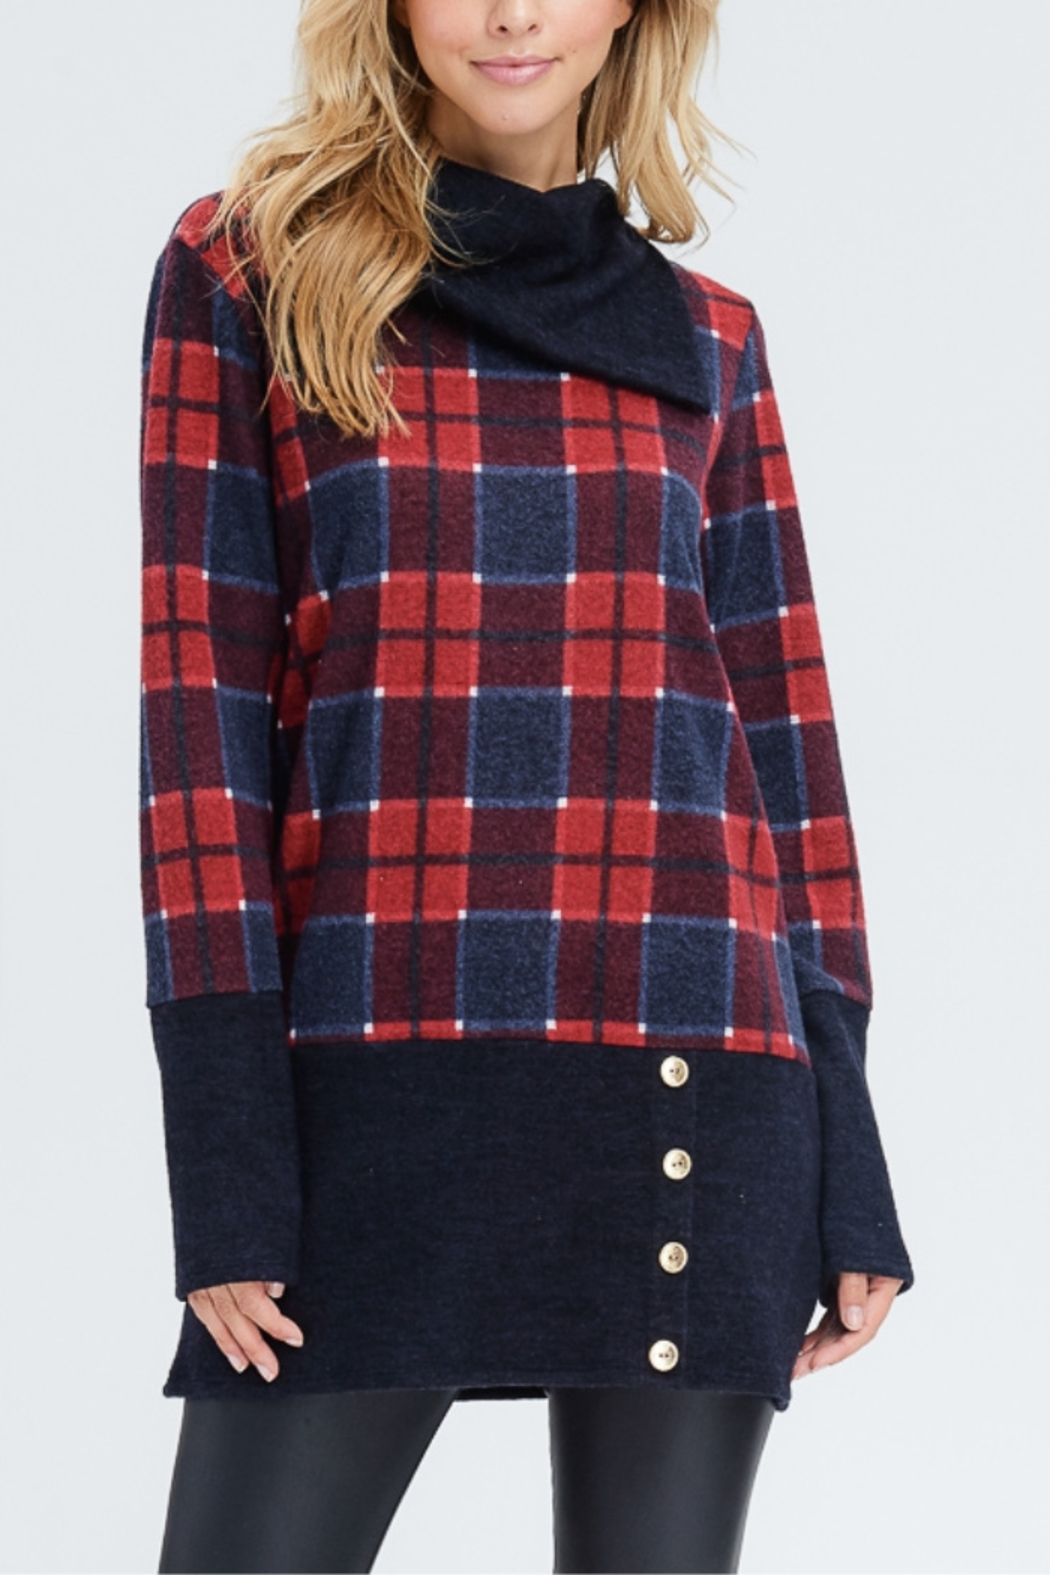 White Birch  Plaid Knit Sweater - Front Cropped Image